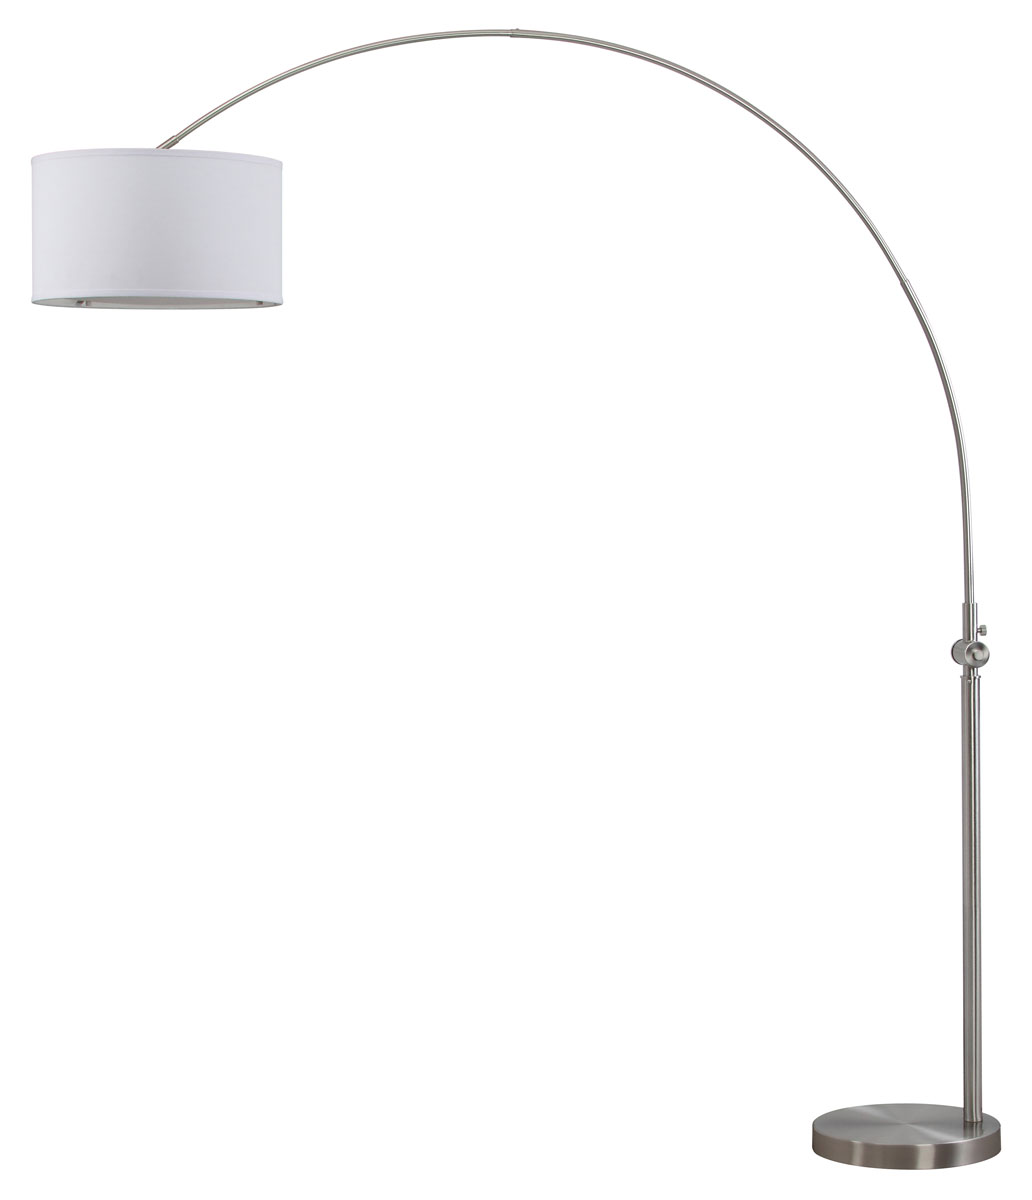 Lit4351a floor lamps lighting by safavieh lit4351a mozeypictures Image collections